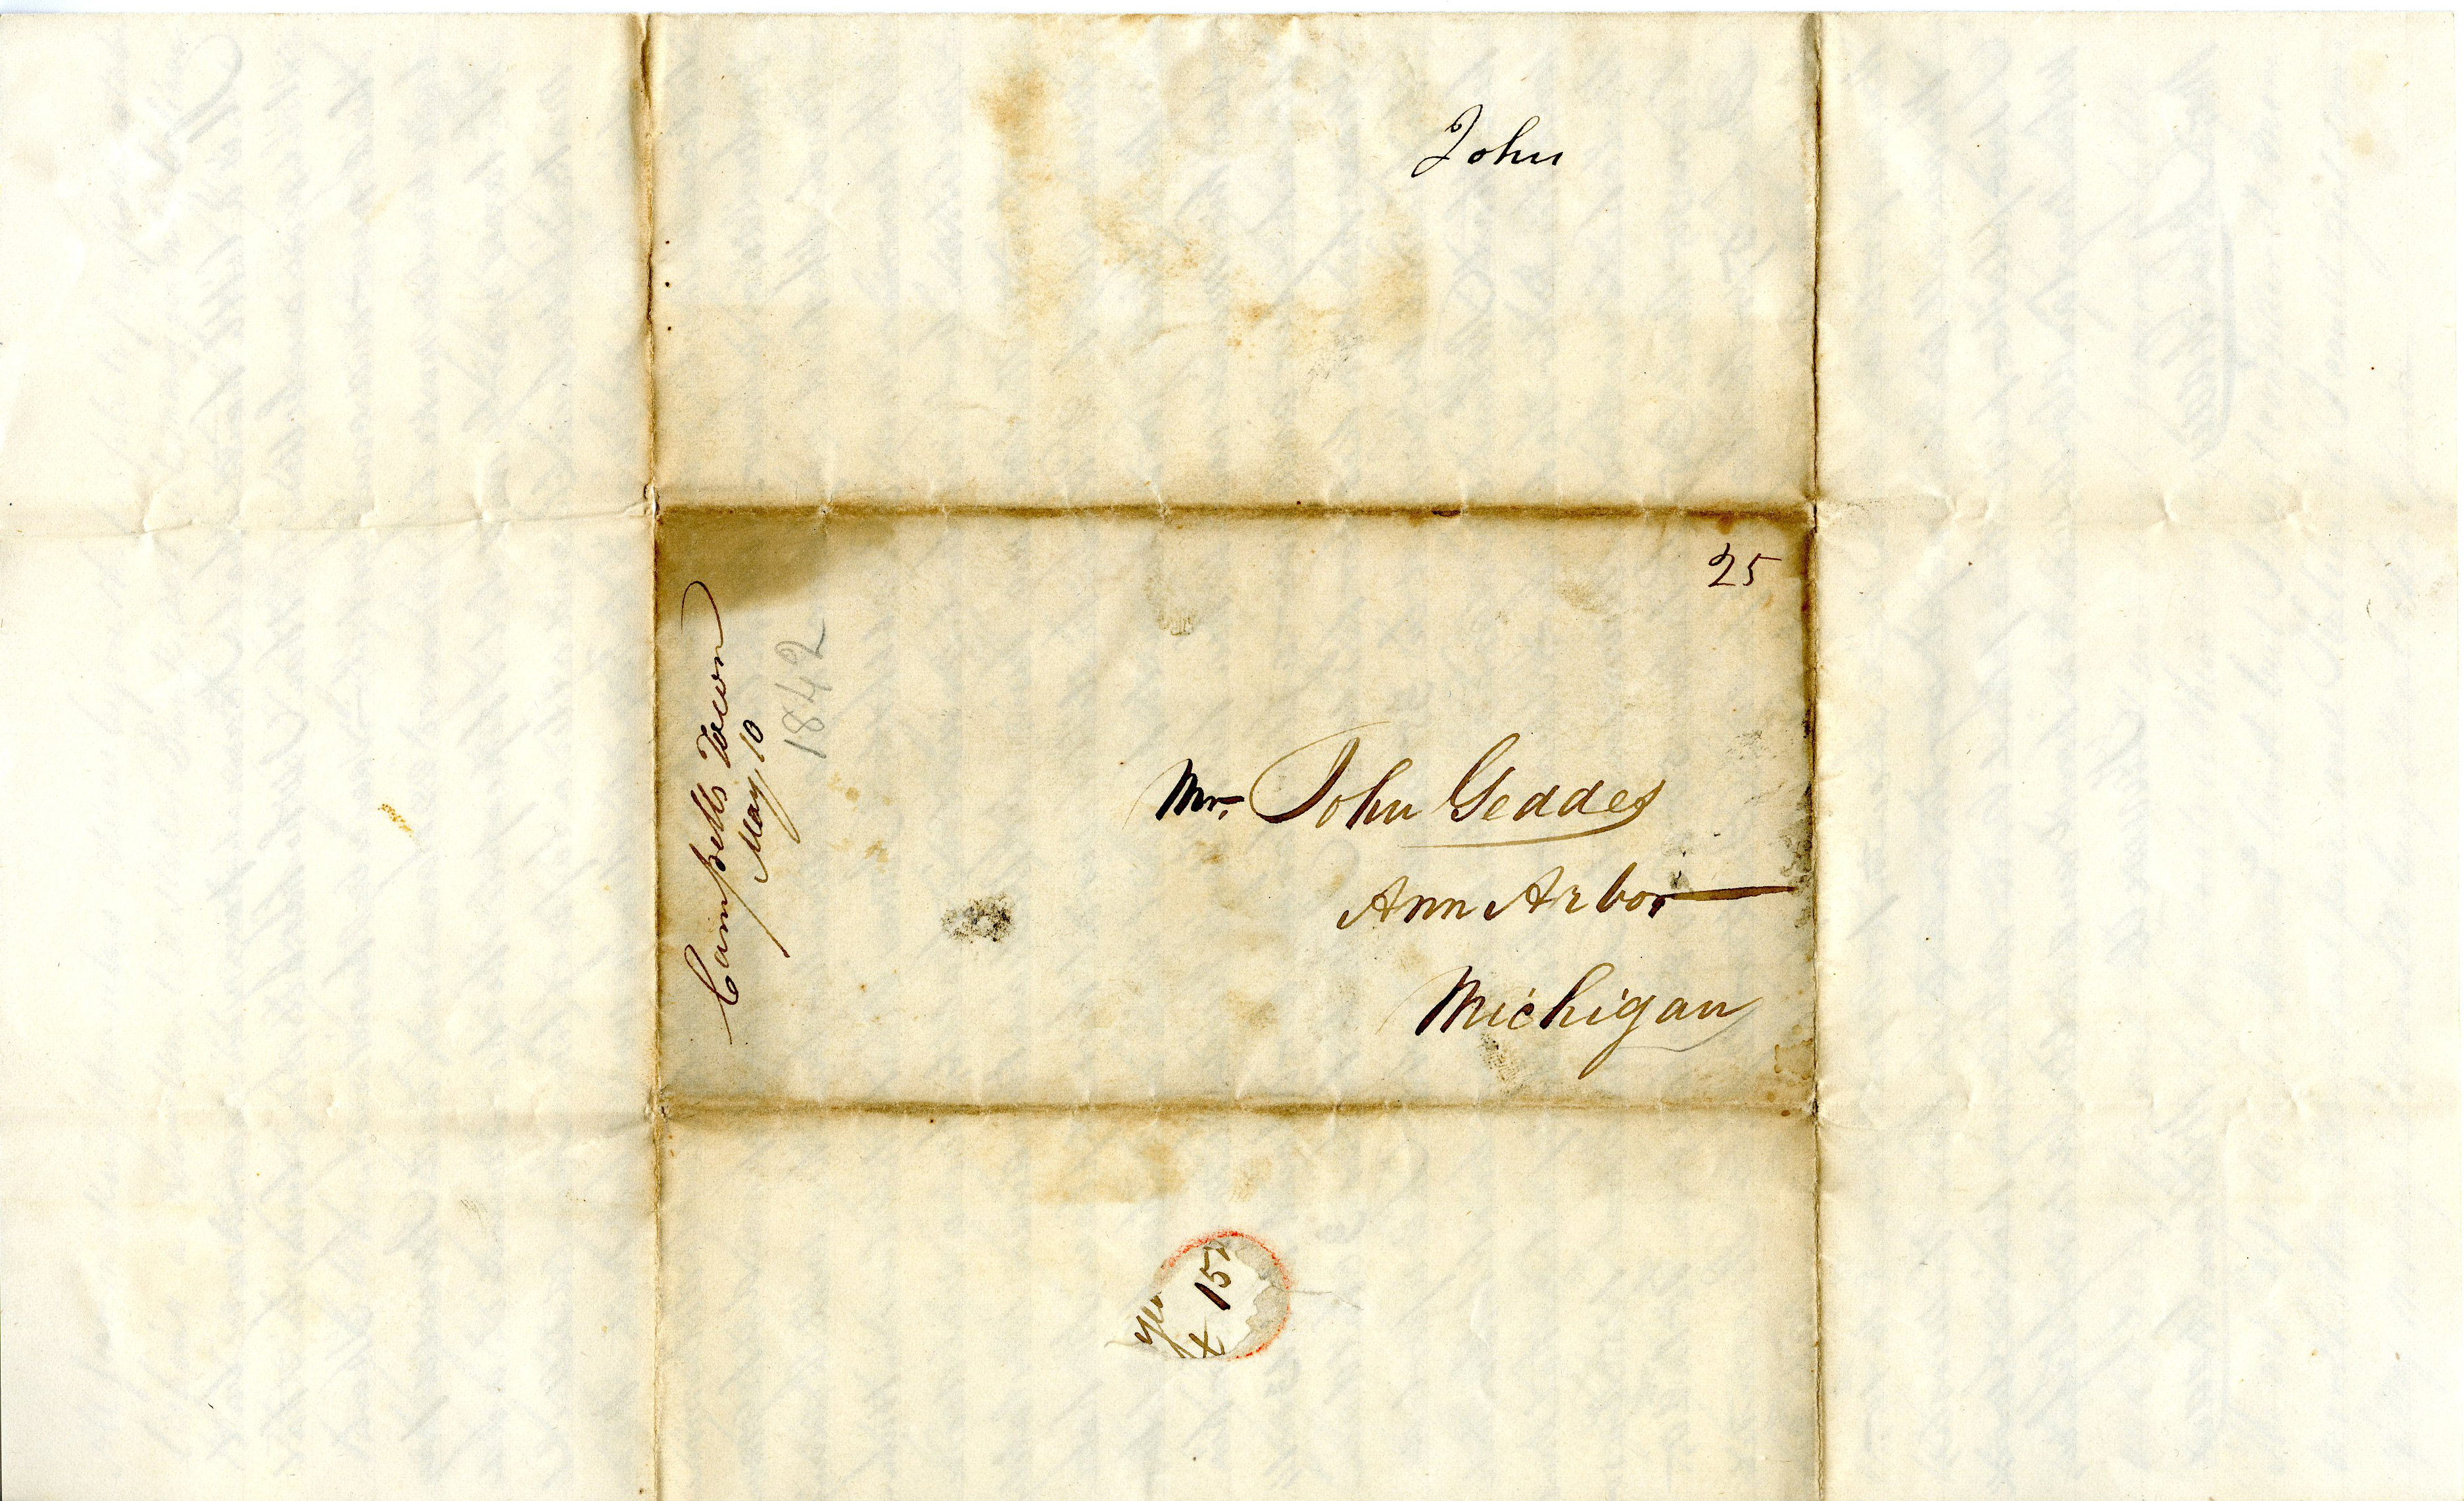 Letter From William Geddes to John Geddes, May 11, 1842 image